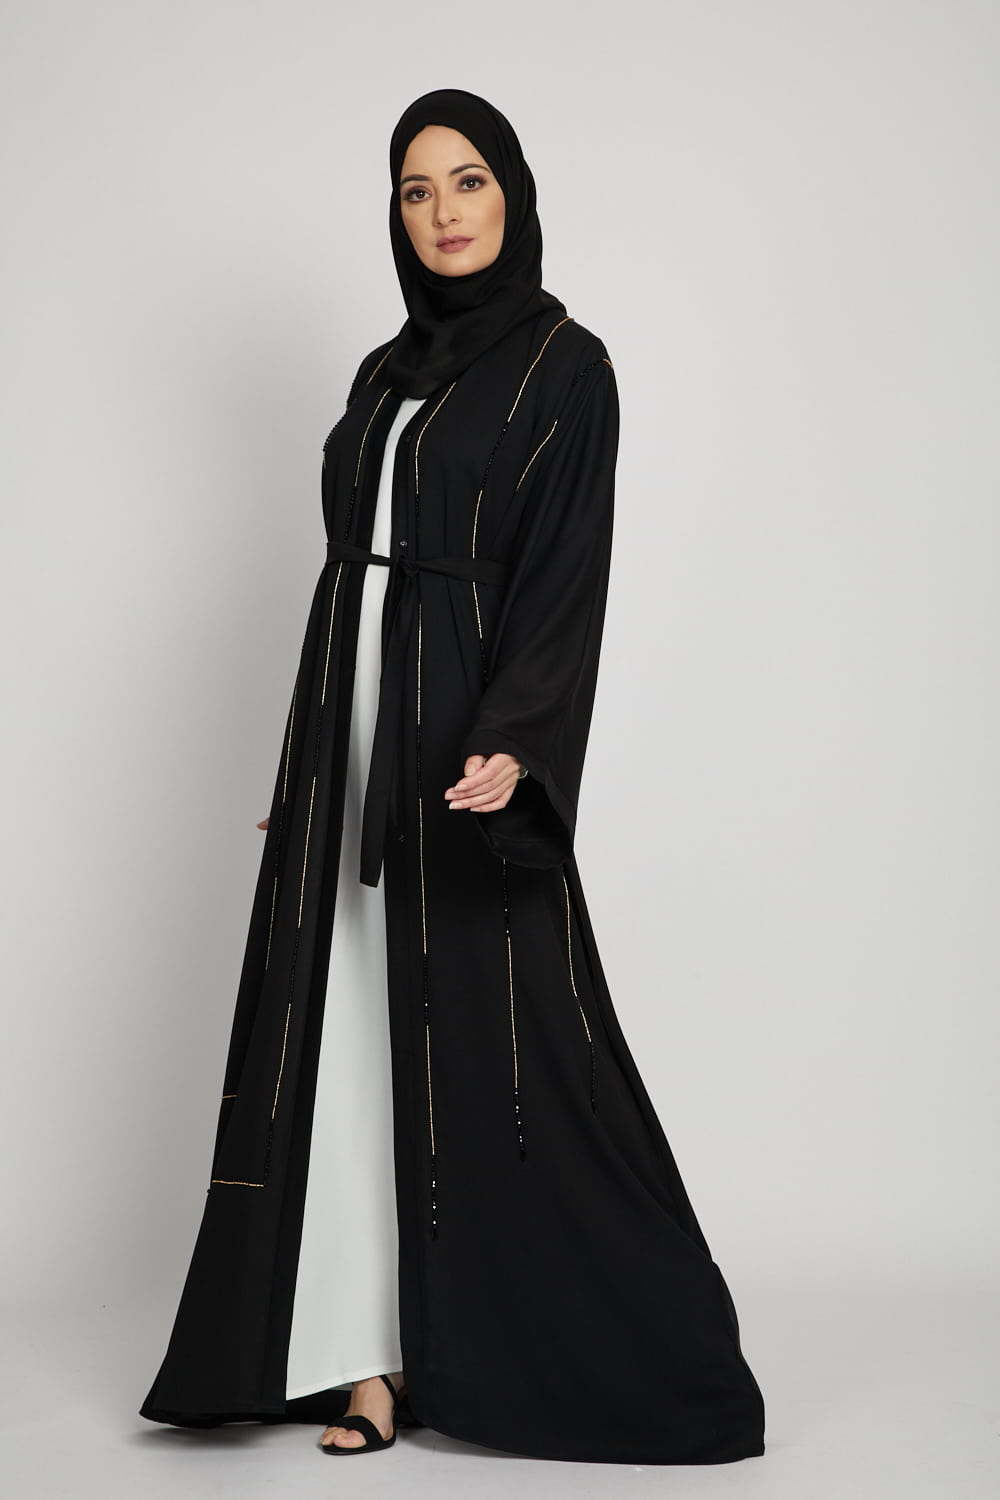 Black Open Abaya with Gold Gemstone Piping